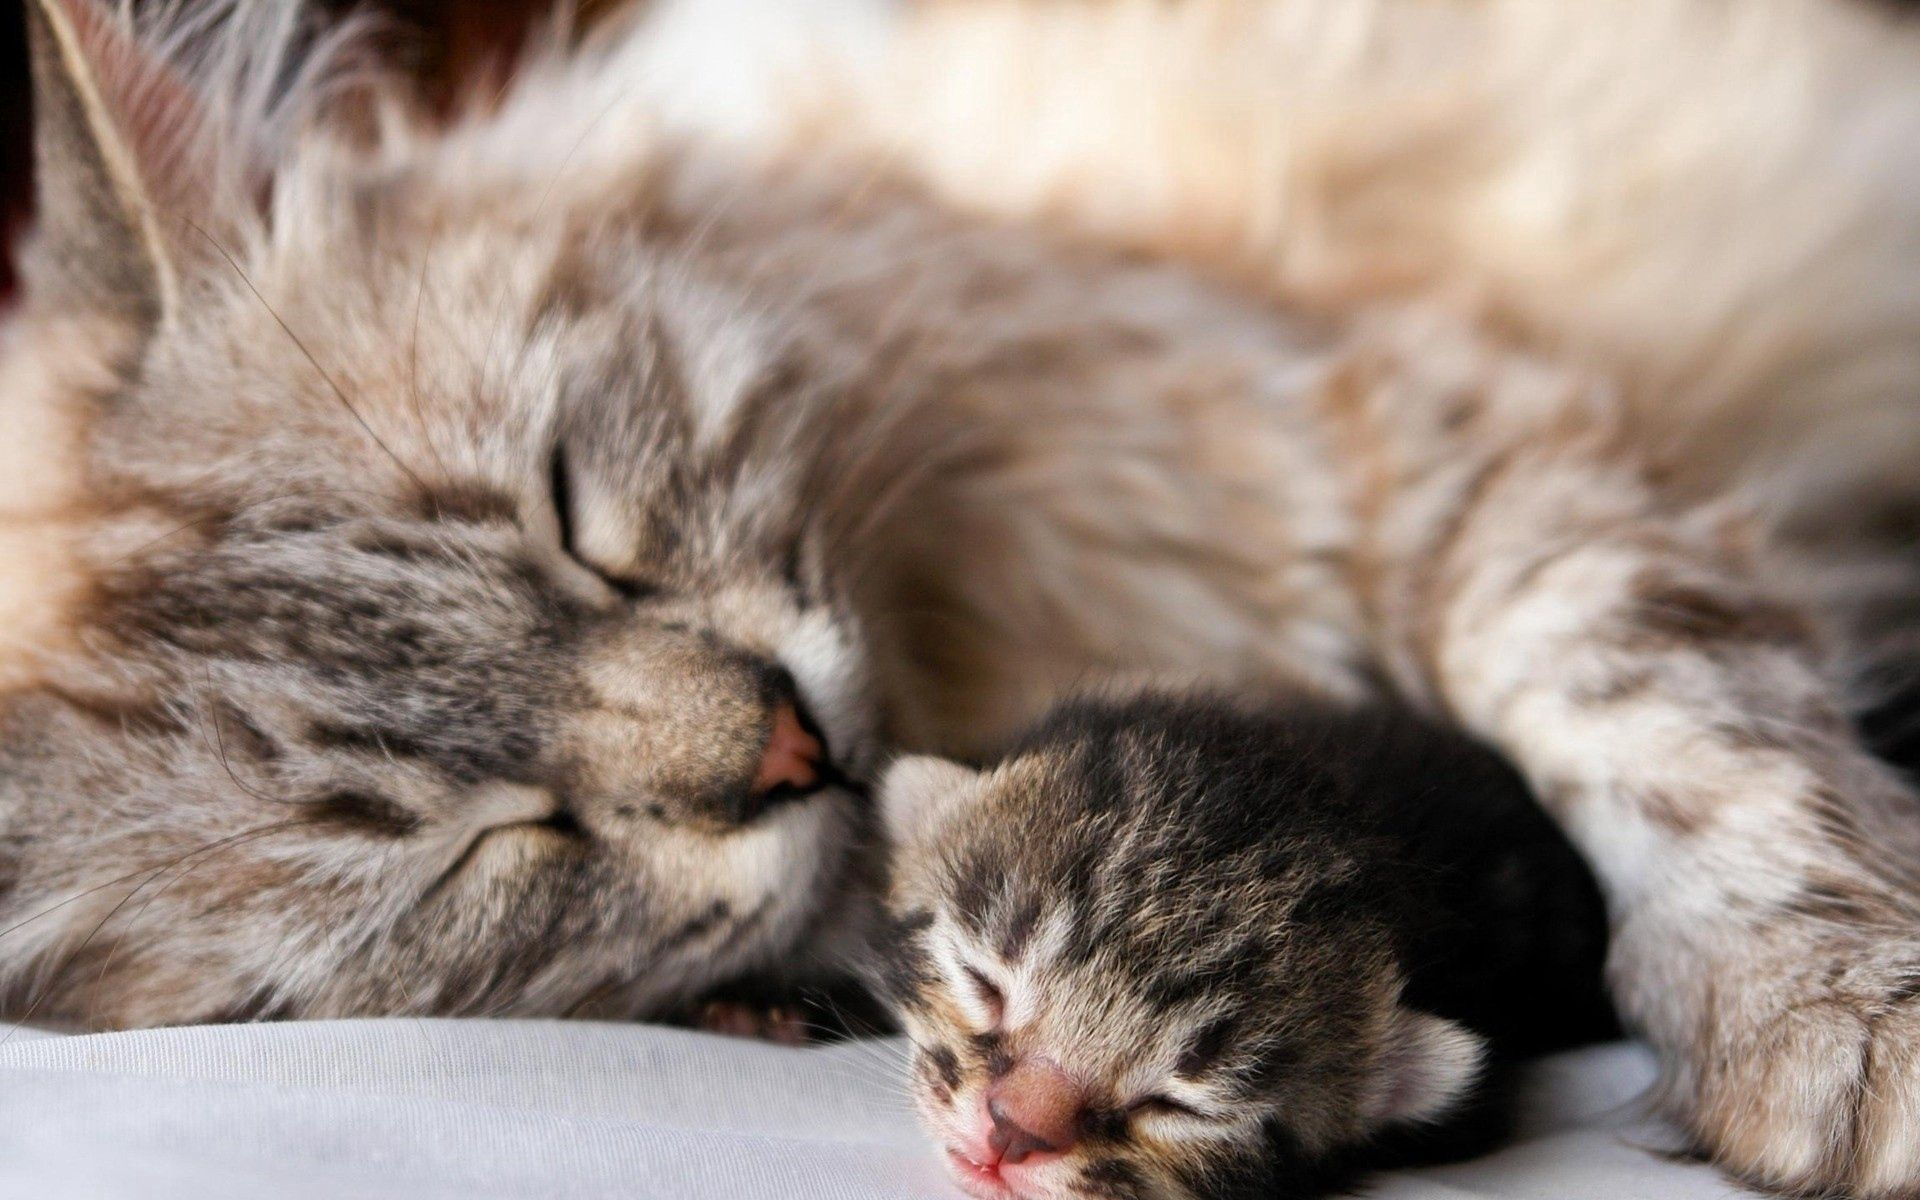 72474 download wallpaper Animals, Cat, Kitty, Kitten, Sleep, Dream, Couple, Pair, Tenderness, Young, Joey screensavers and pictures for free